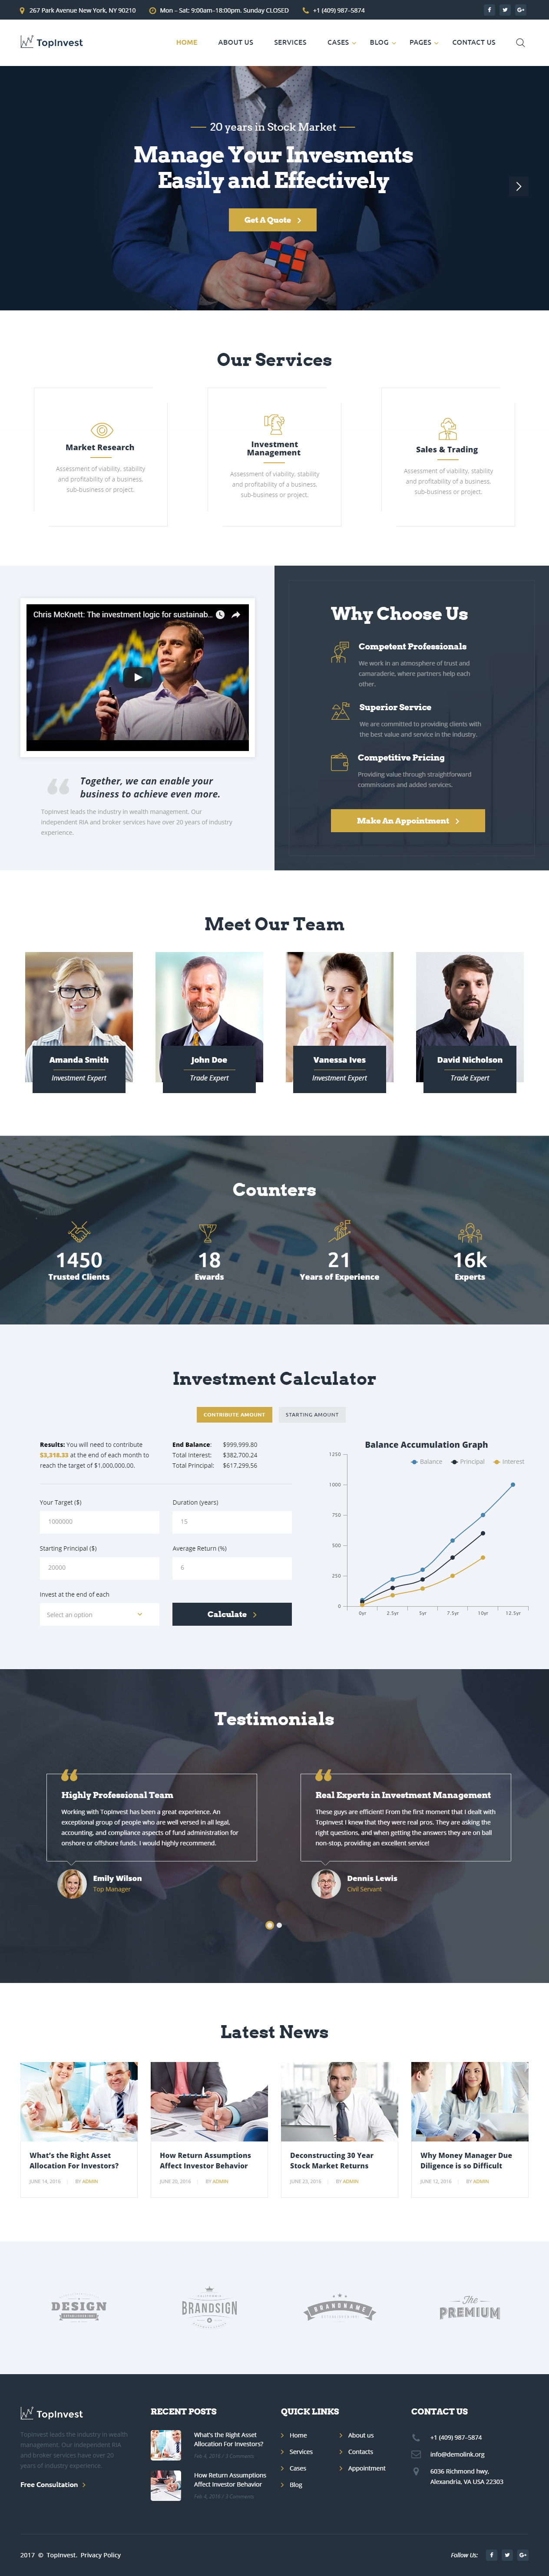 25 Best Responsive HTML5 Finance Website Templates 2017